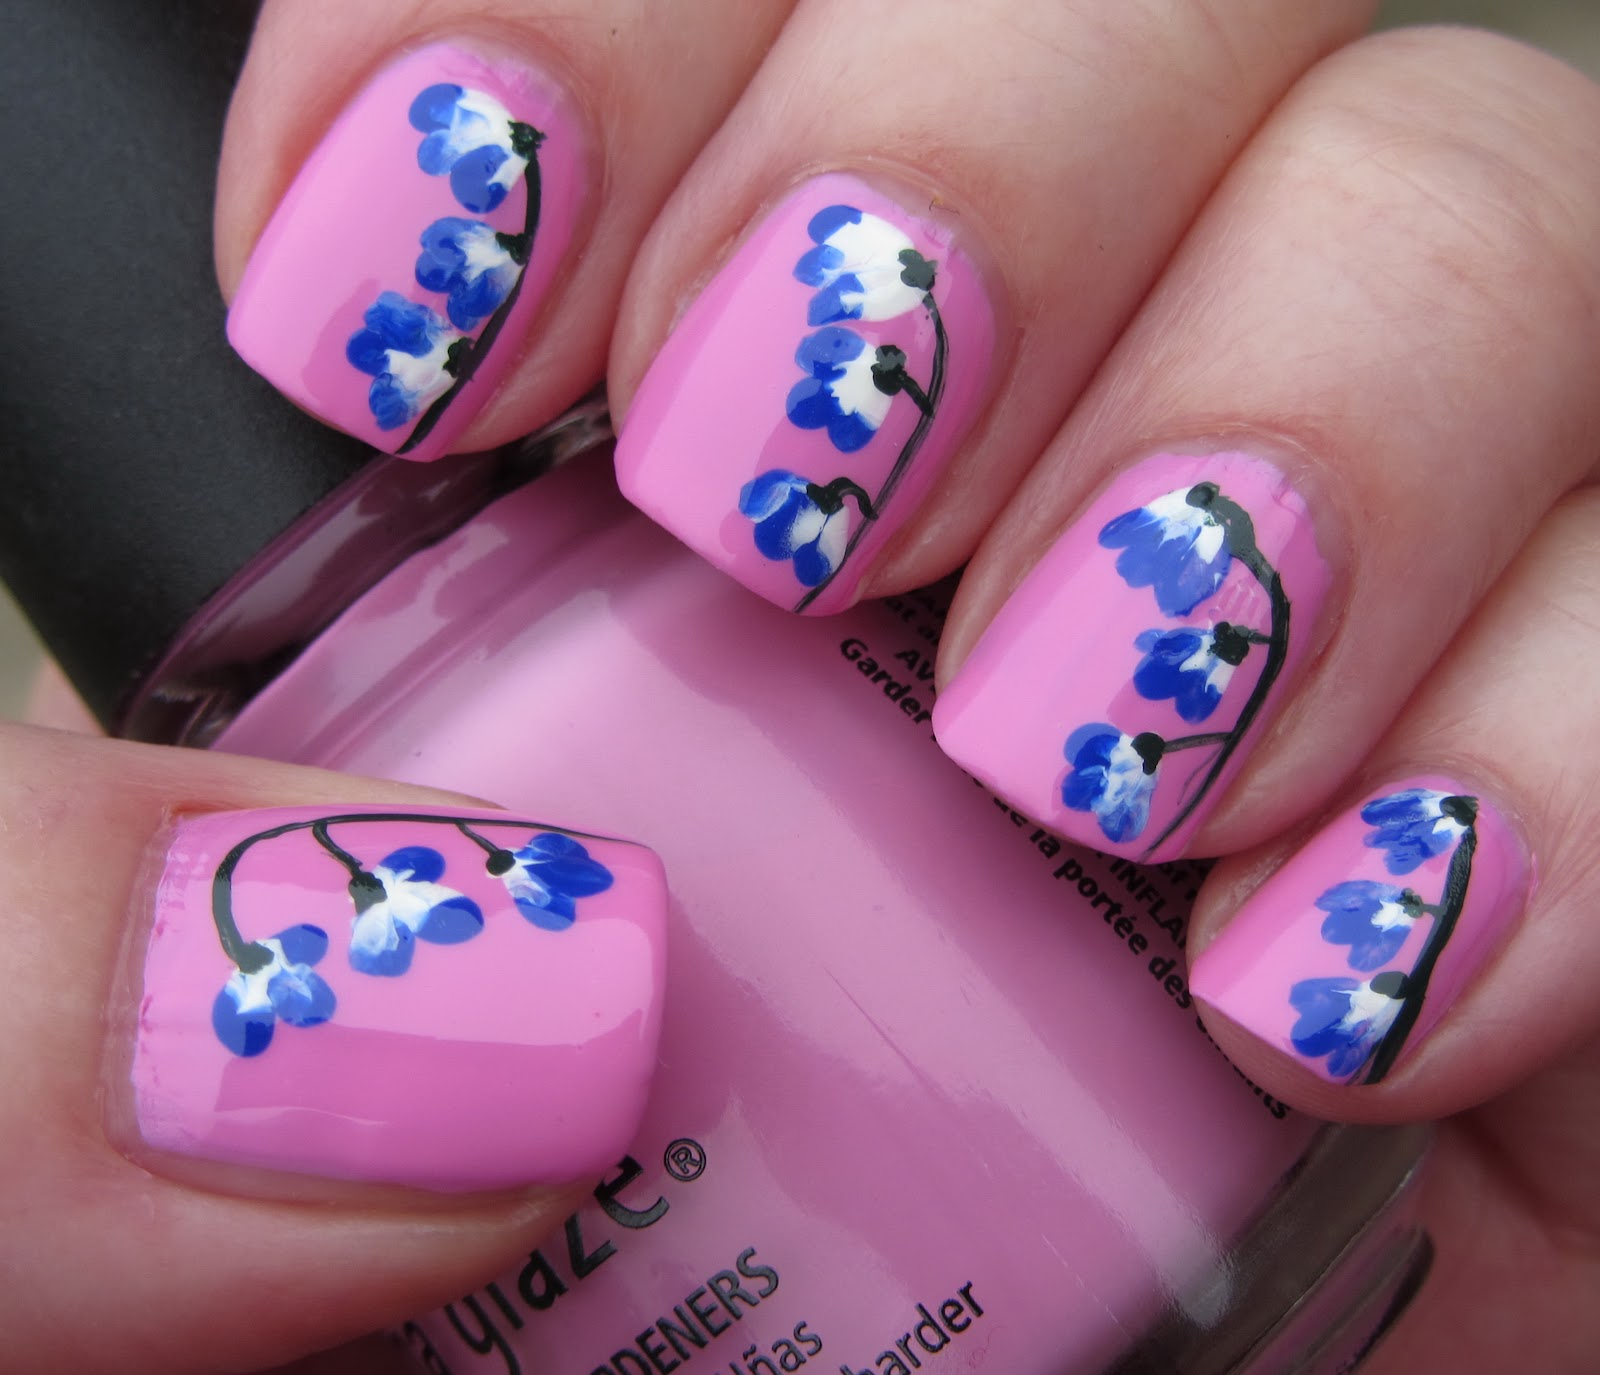 Nail Art and Polish Blog: Pink warning: Hanging blue/white flowers ...